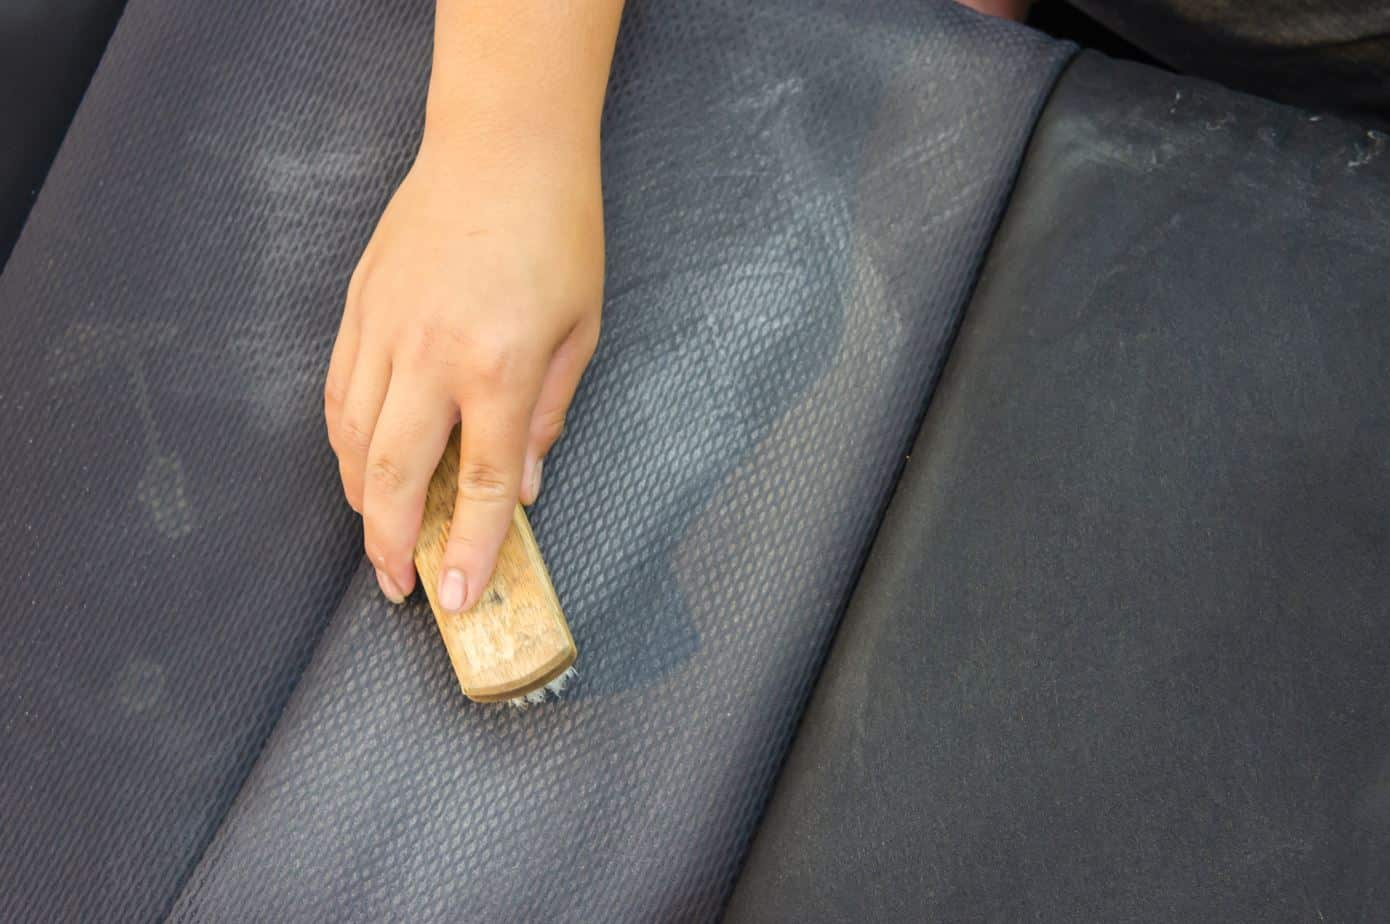 woman scrubbing an upholstered seat with a hard brush